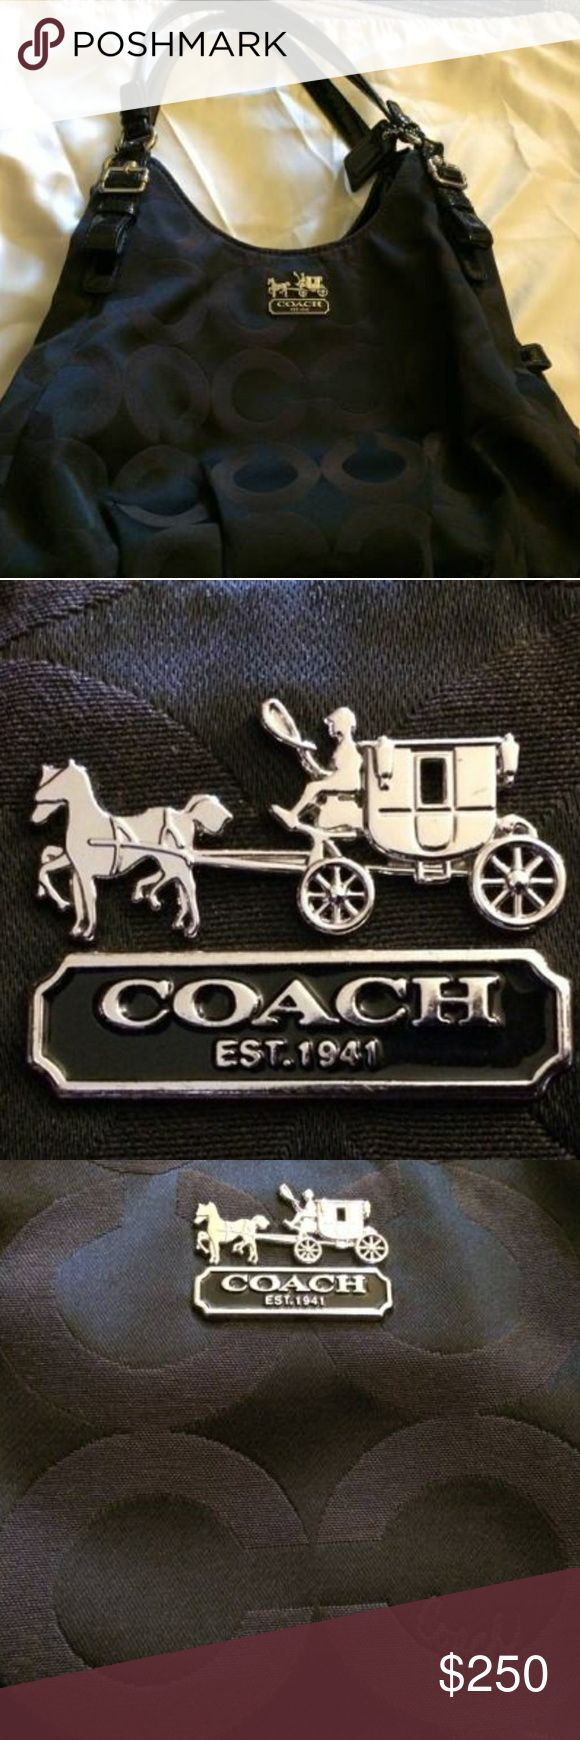 Coach purse with Coach dust bag Brand name : Coach  Classic Coach purse  Black with red lining  Height (without straps ): 12 inches  Width: 14 inches  Depth: 4 inches  Strap height : 10 inches  Comes with Coach purse and Coach dust cover Coach Bags Shoulder Bags